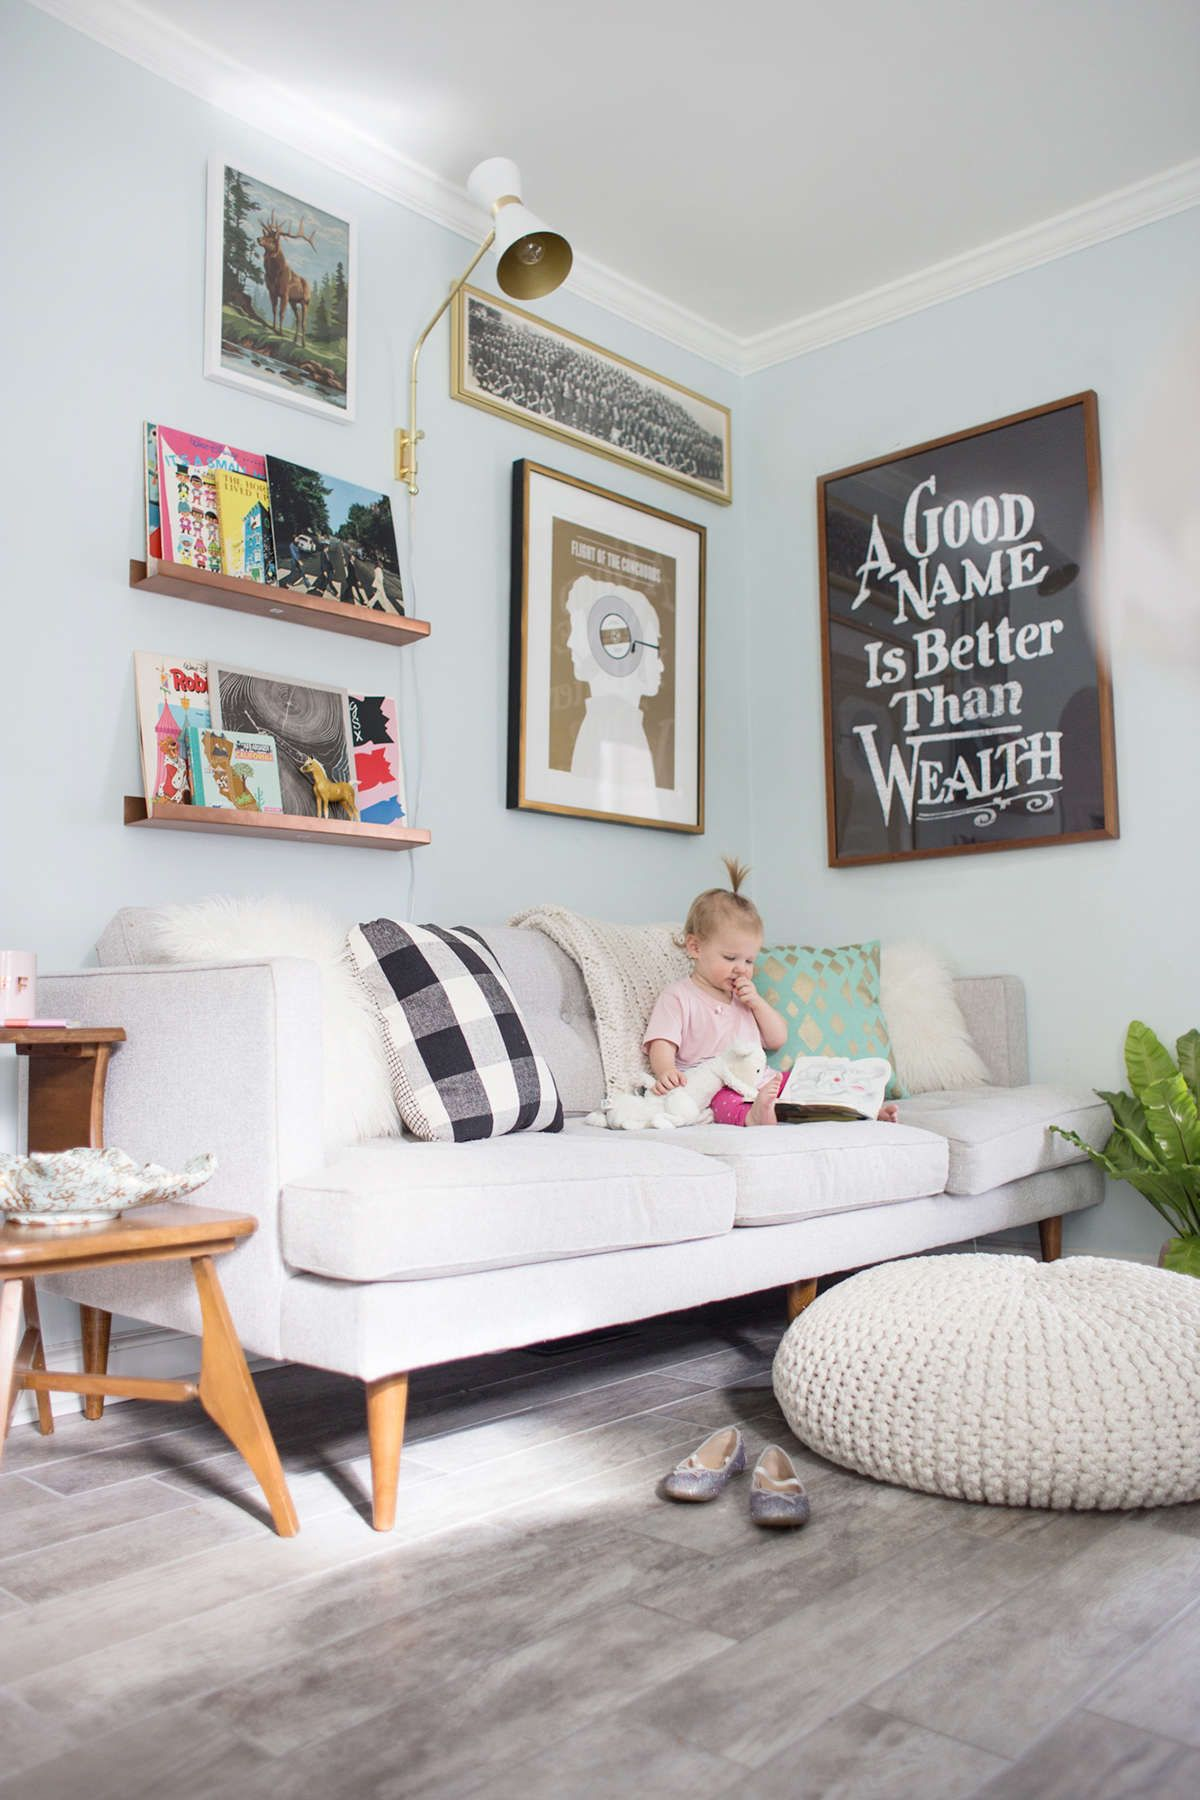 A Living Room With Kids | Playroom | Family room design ...